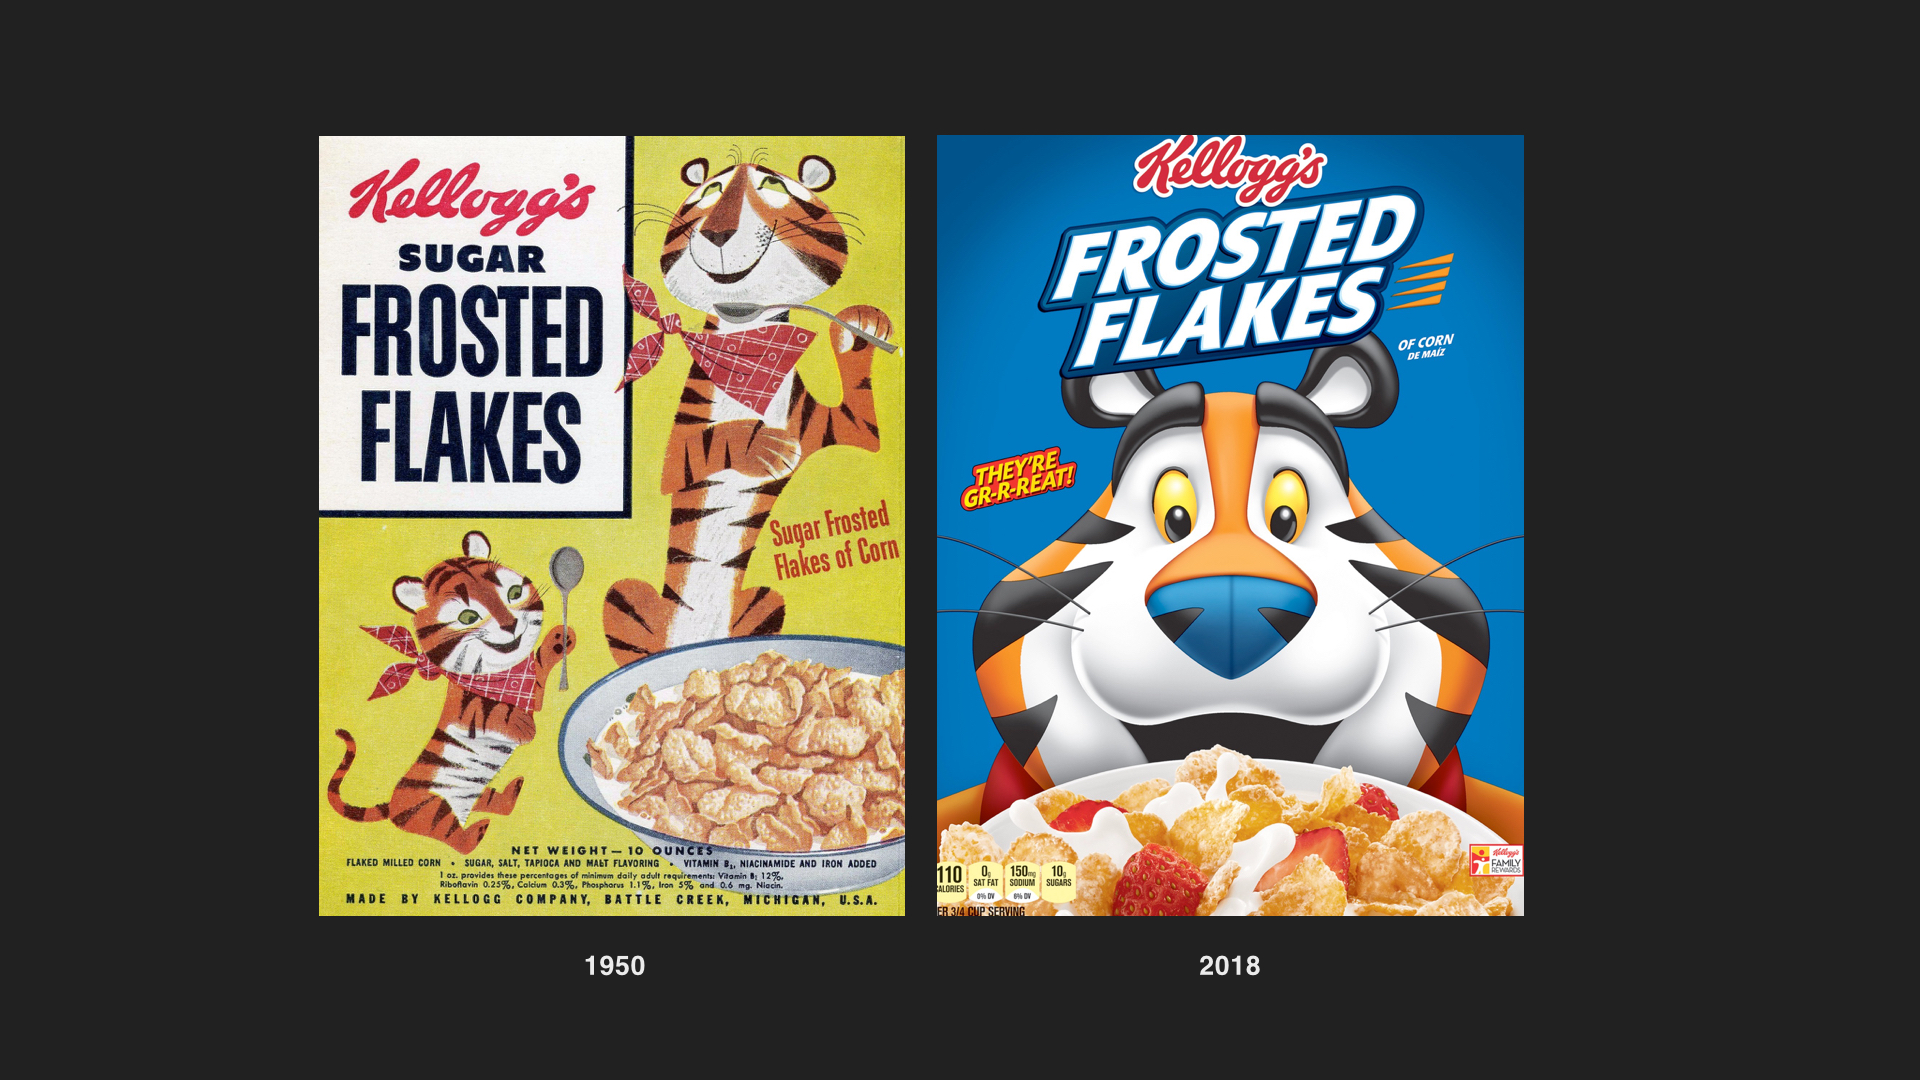 Kellogg's has simply dropped the word sugar and updated Tony the Tiger, but actual cereal remains the same even after last 60 years